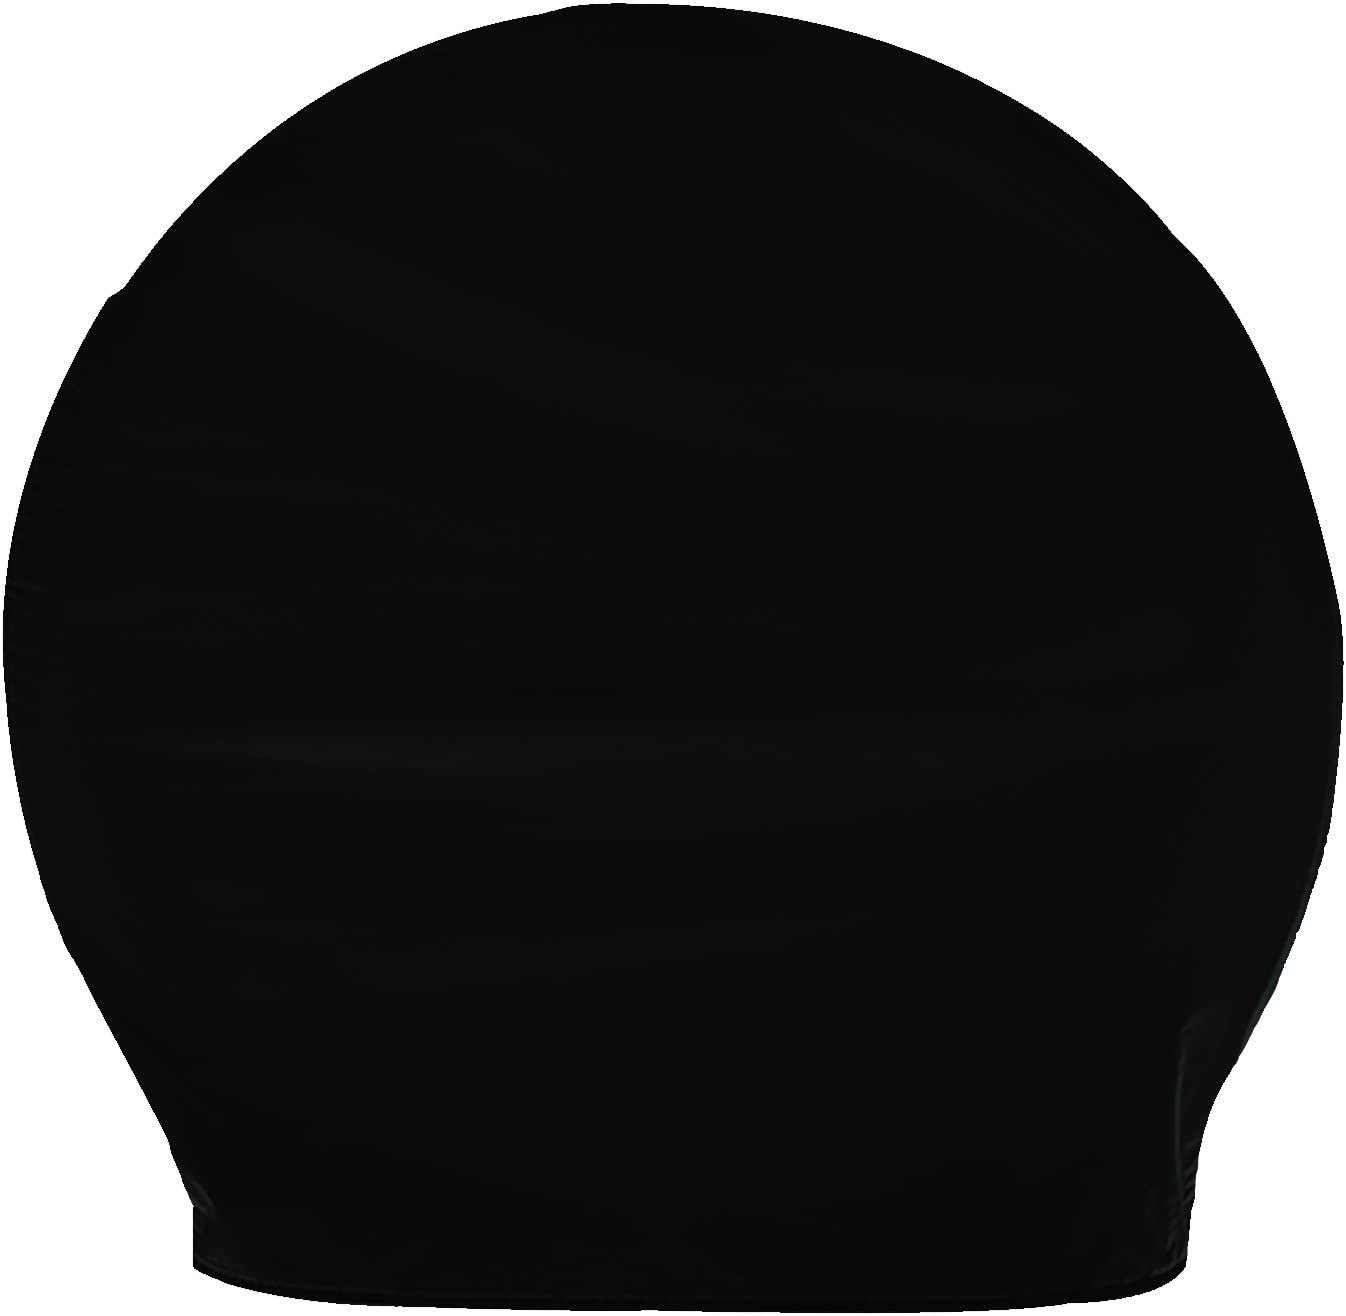 ADCO 1739 Black Vinyl Spare Tire Cover N Fits 24 Diameter Wheel